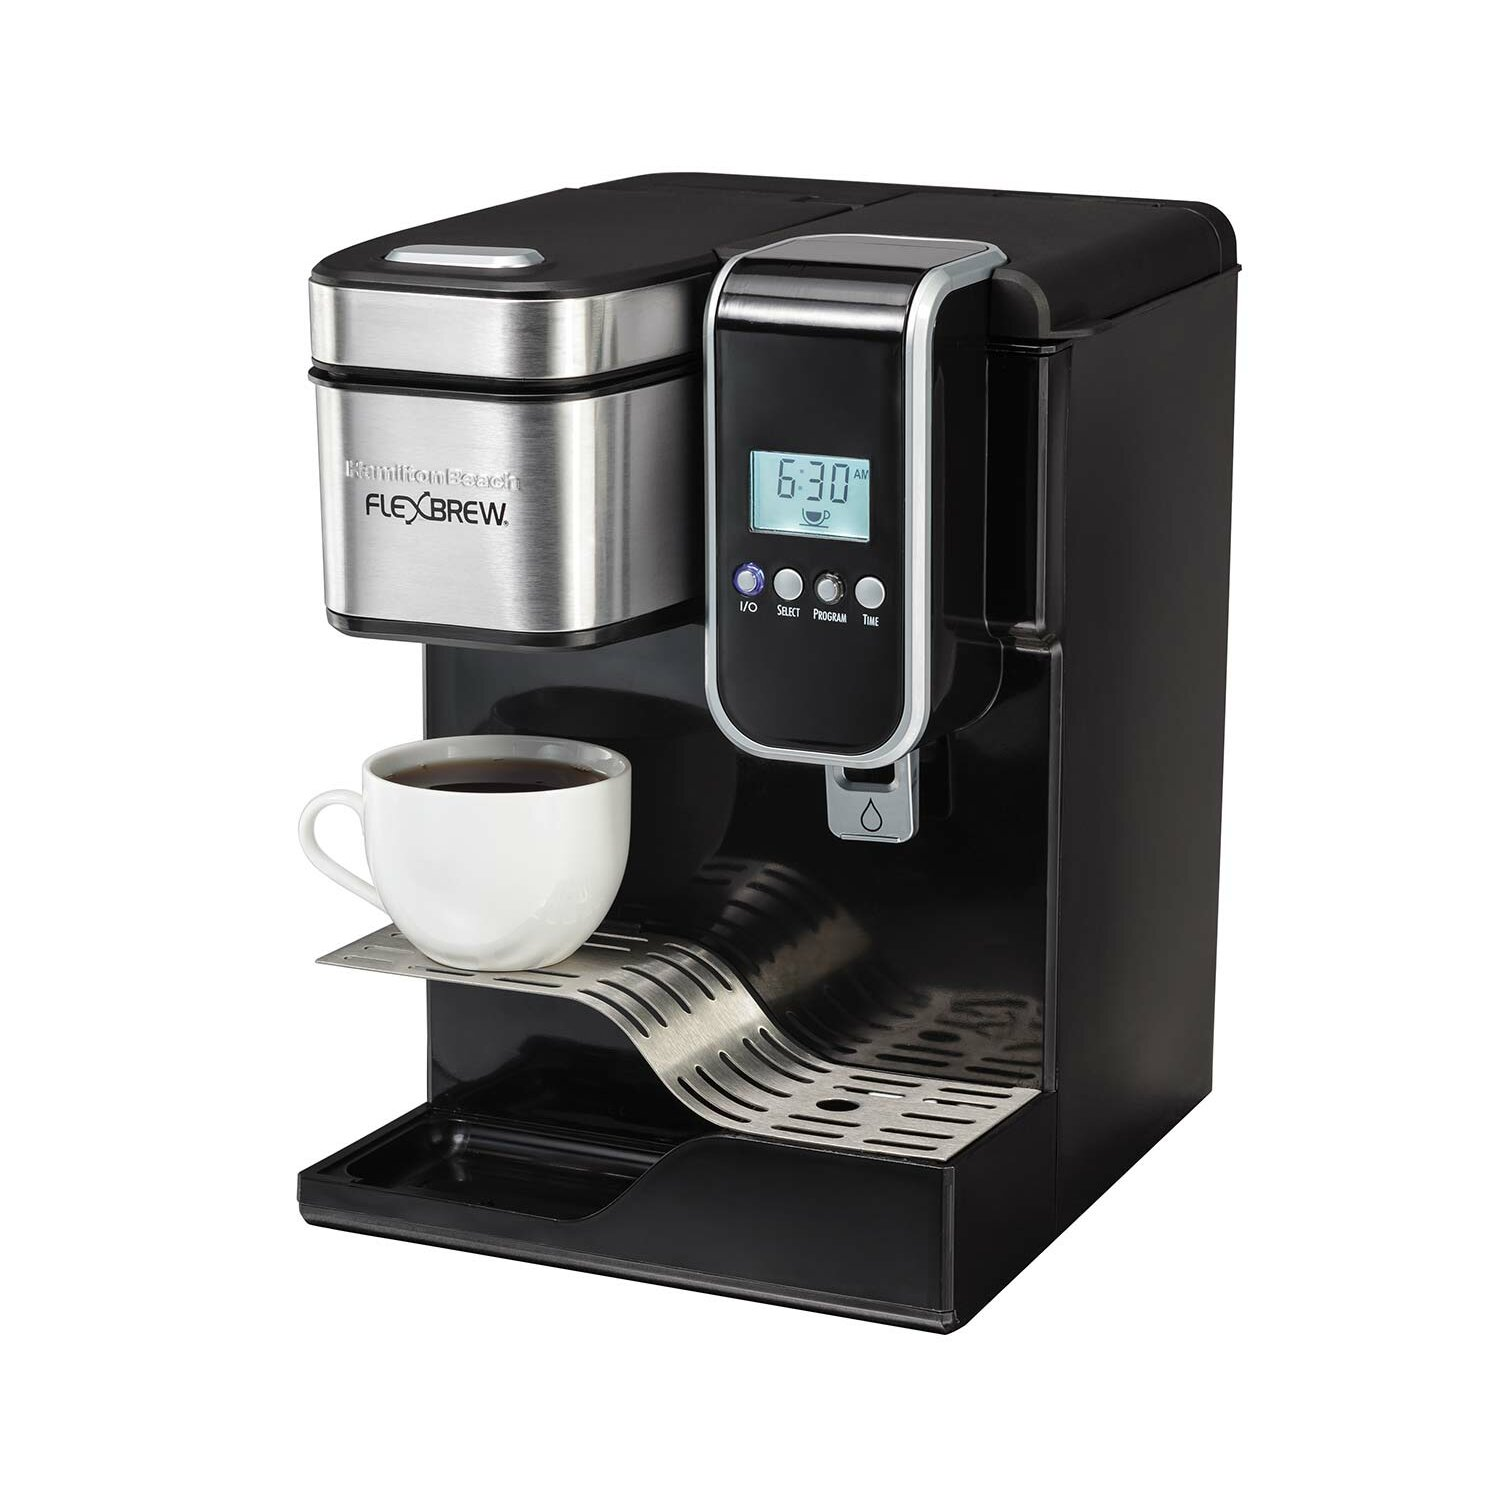 Hamilton Beach FlexBrew Programmable Single-Serve Coffee Maker Wayfair